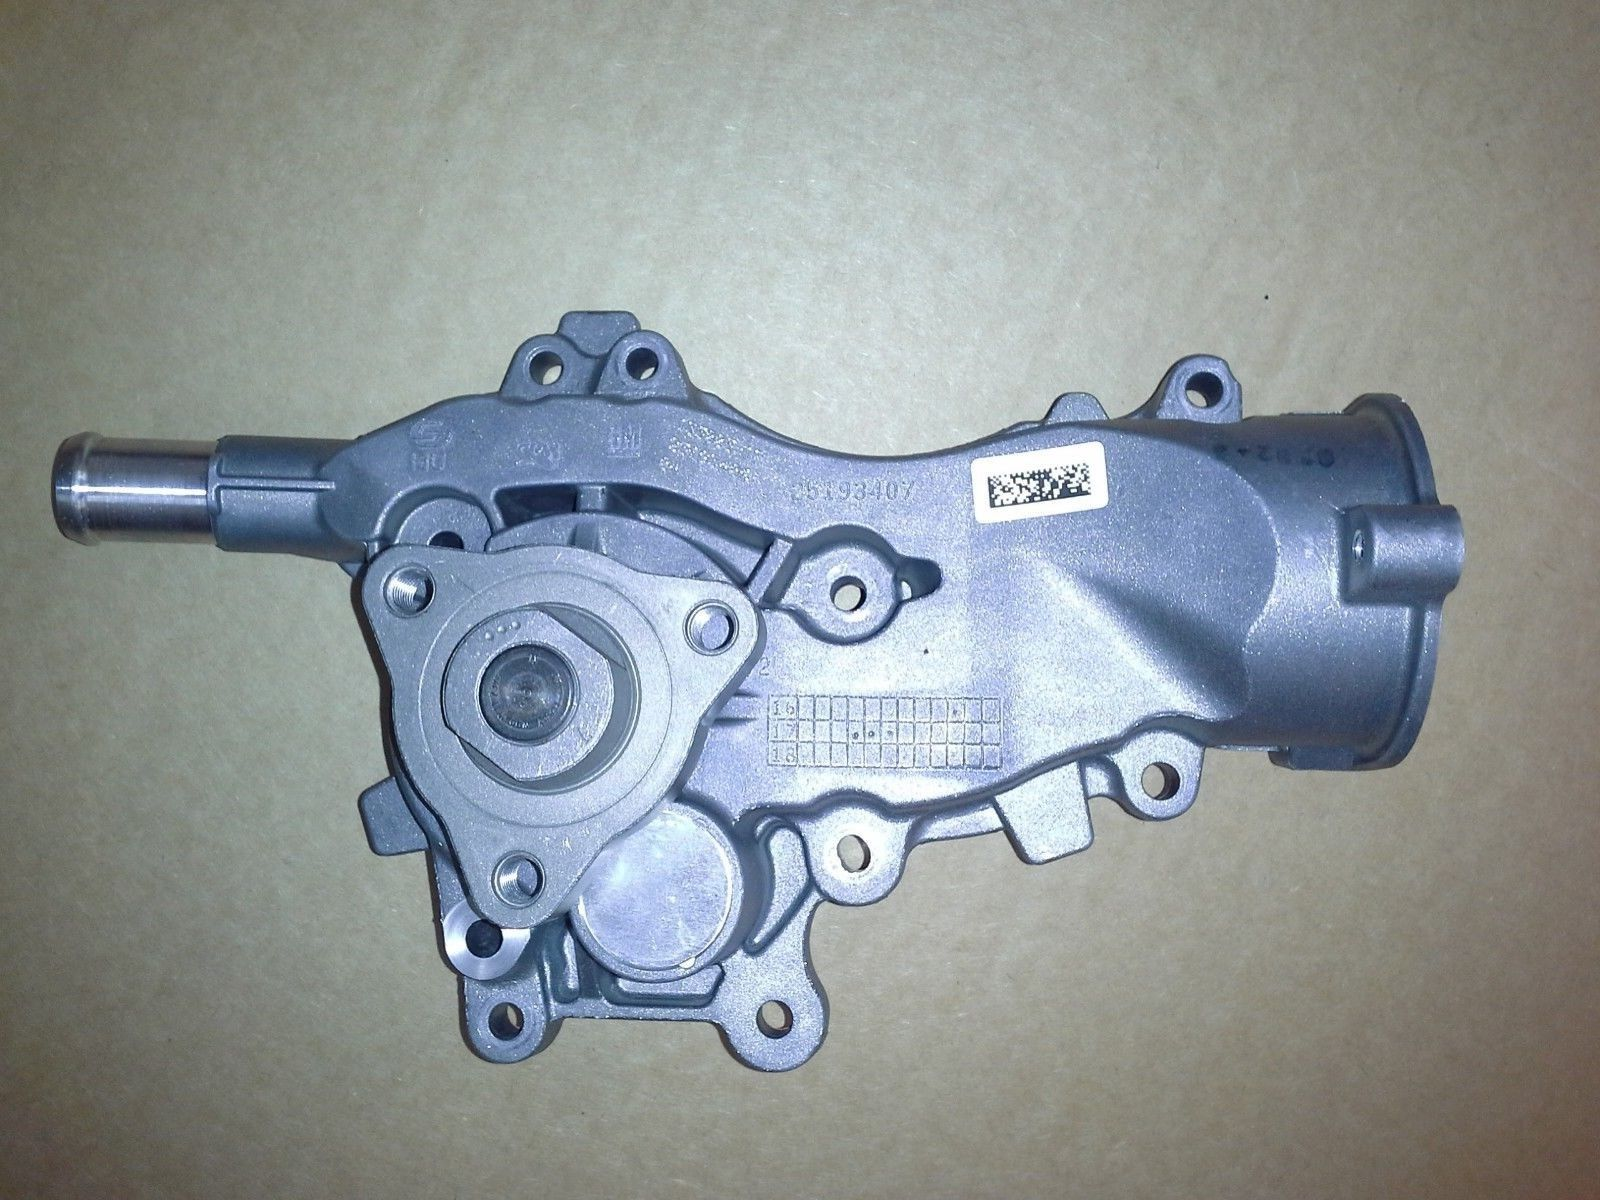 ORIGINAL VAUXHALL ASTRA J CORSA D & E  ADAM 1.2, 1.4 WATER PUMP  25193406 NEW